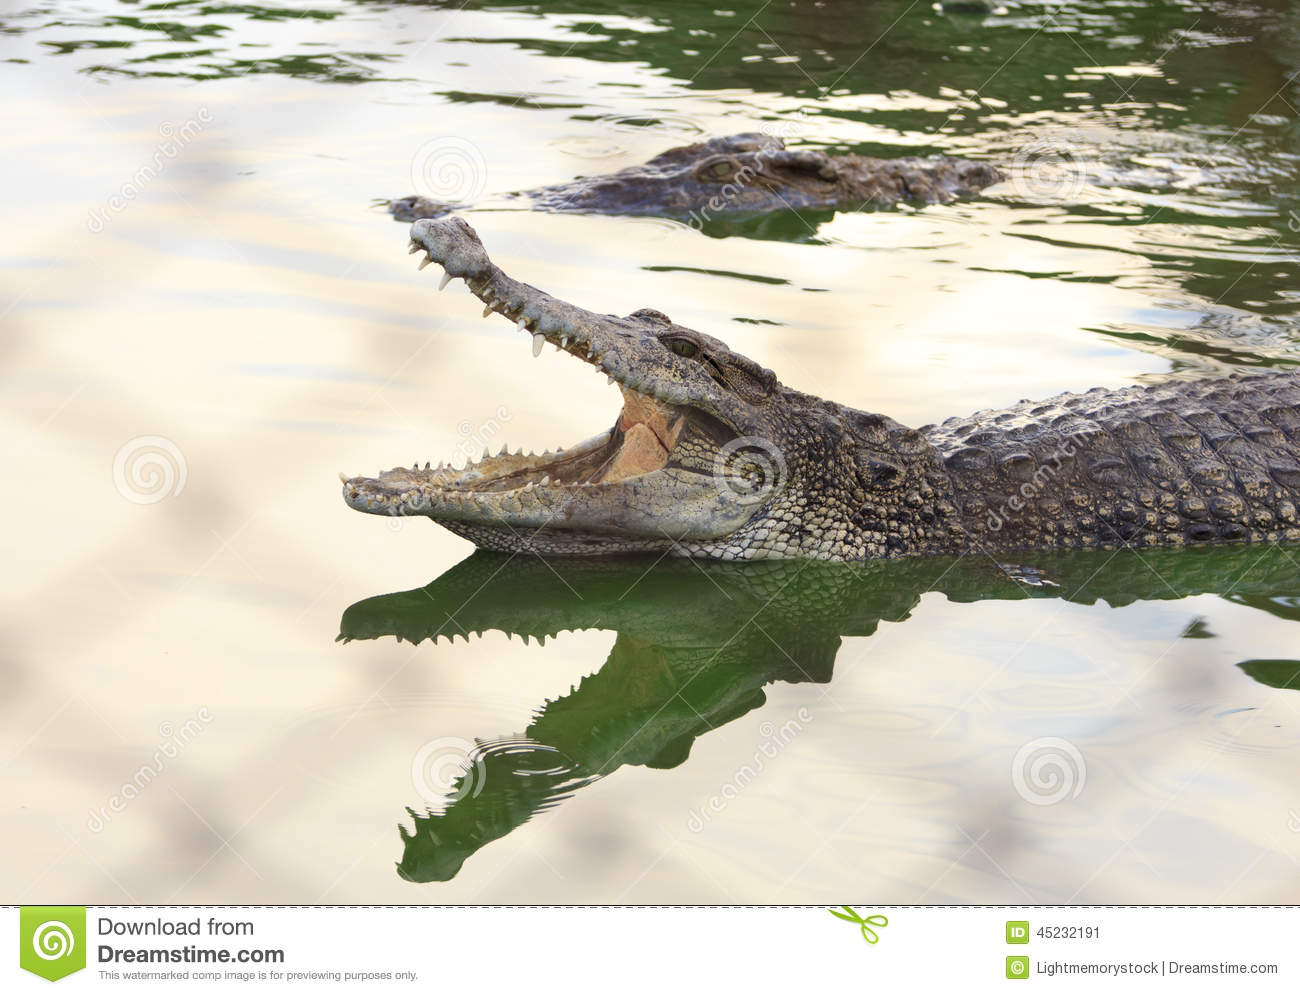 Crocodile Agape. Shot In Samut Prakan Crocodile Farm And Zoo. Stock Photo - I...